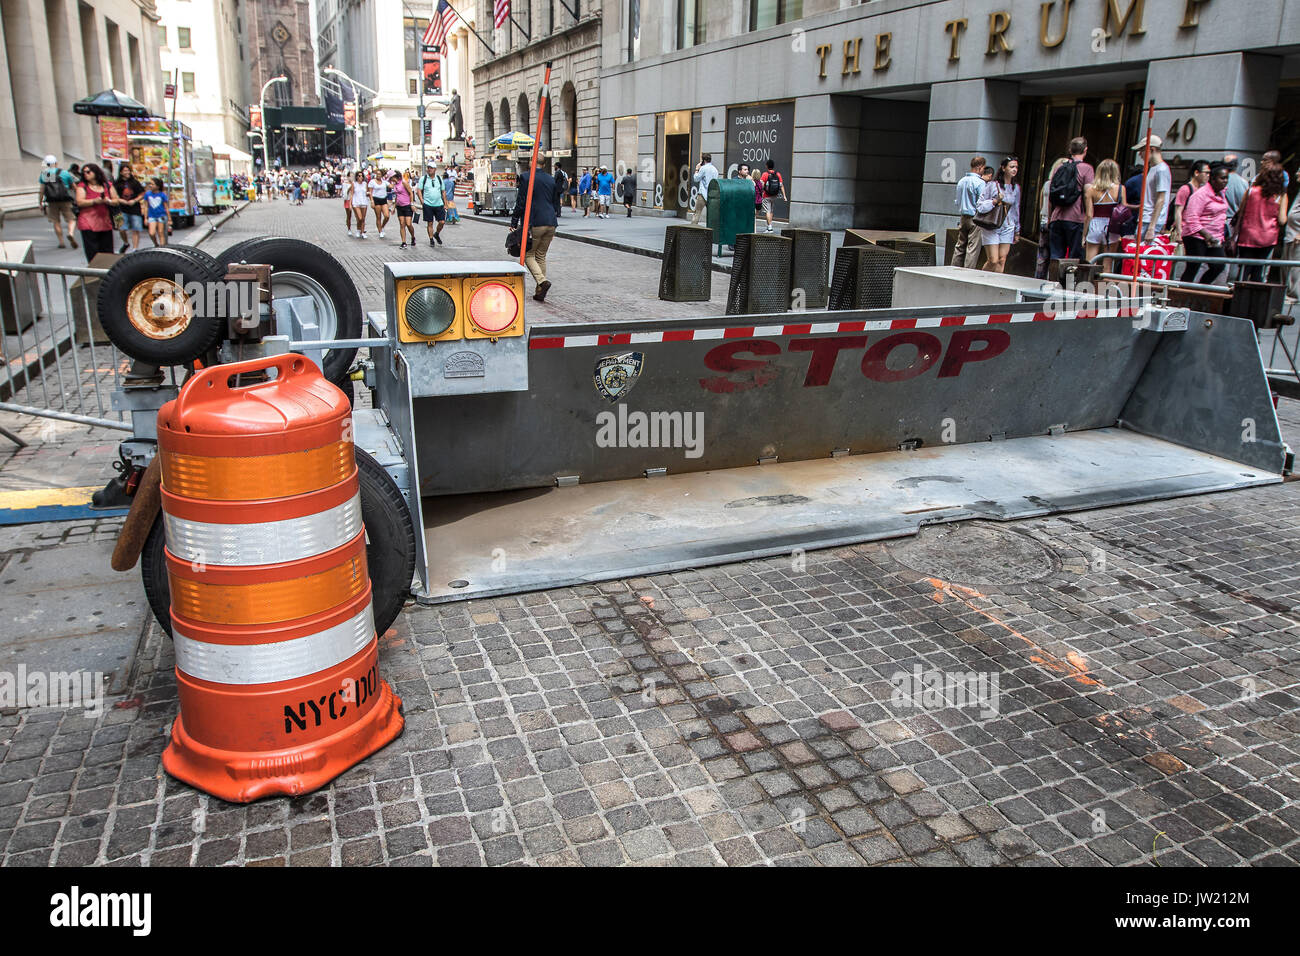 Police barricade prevents automotive access on Wall street. - Stock Image